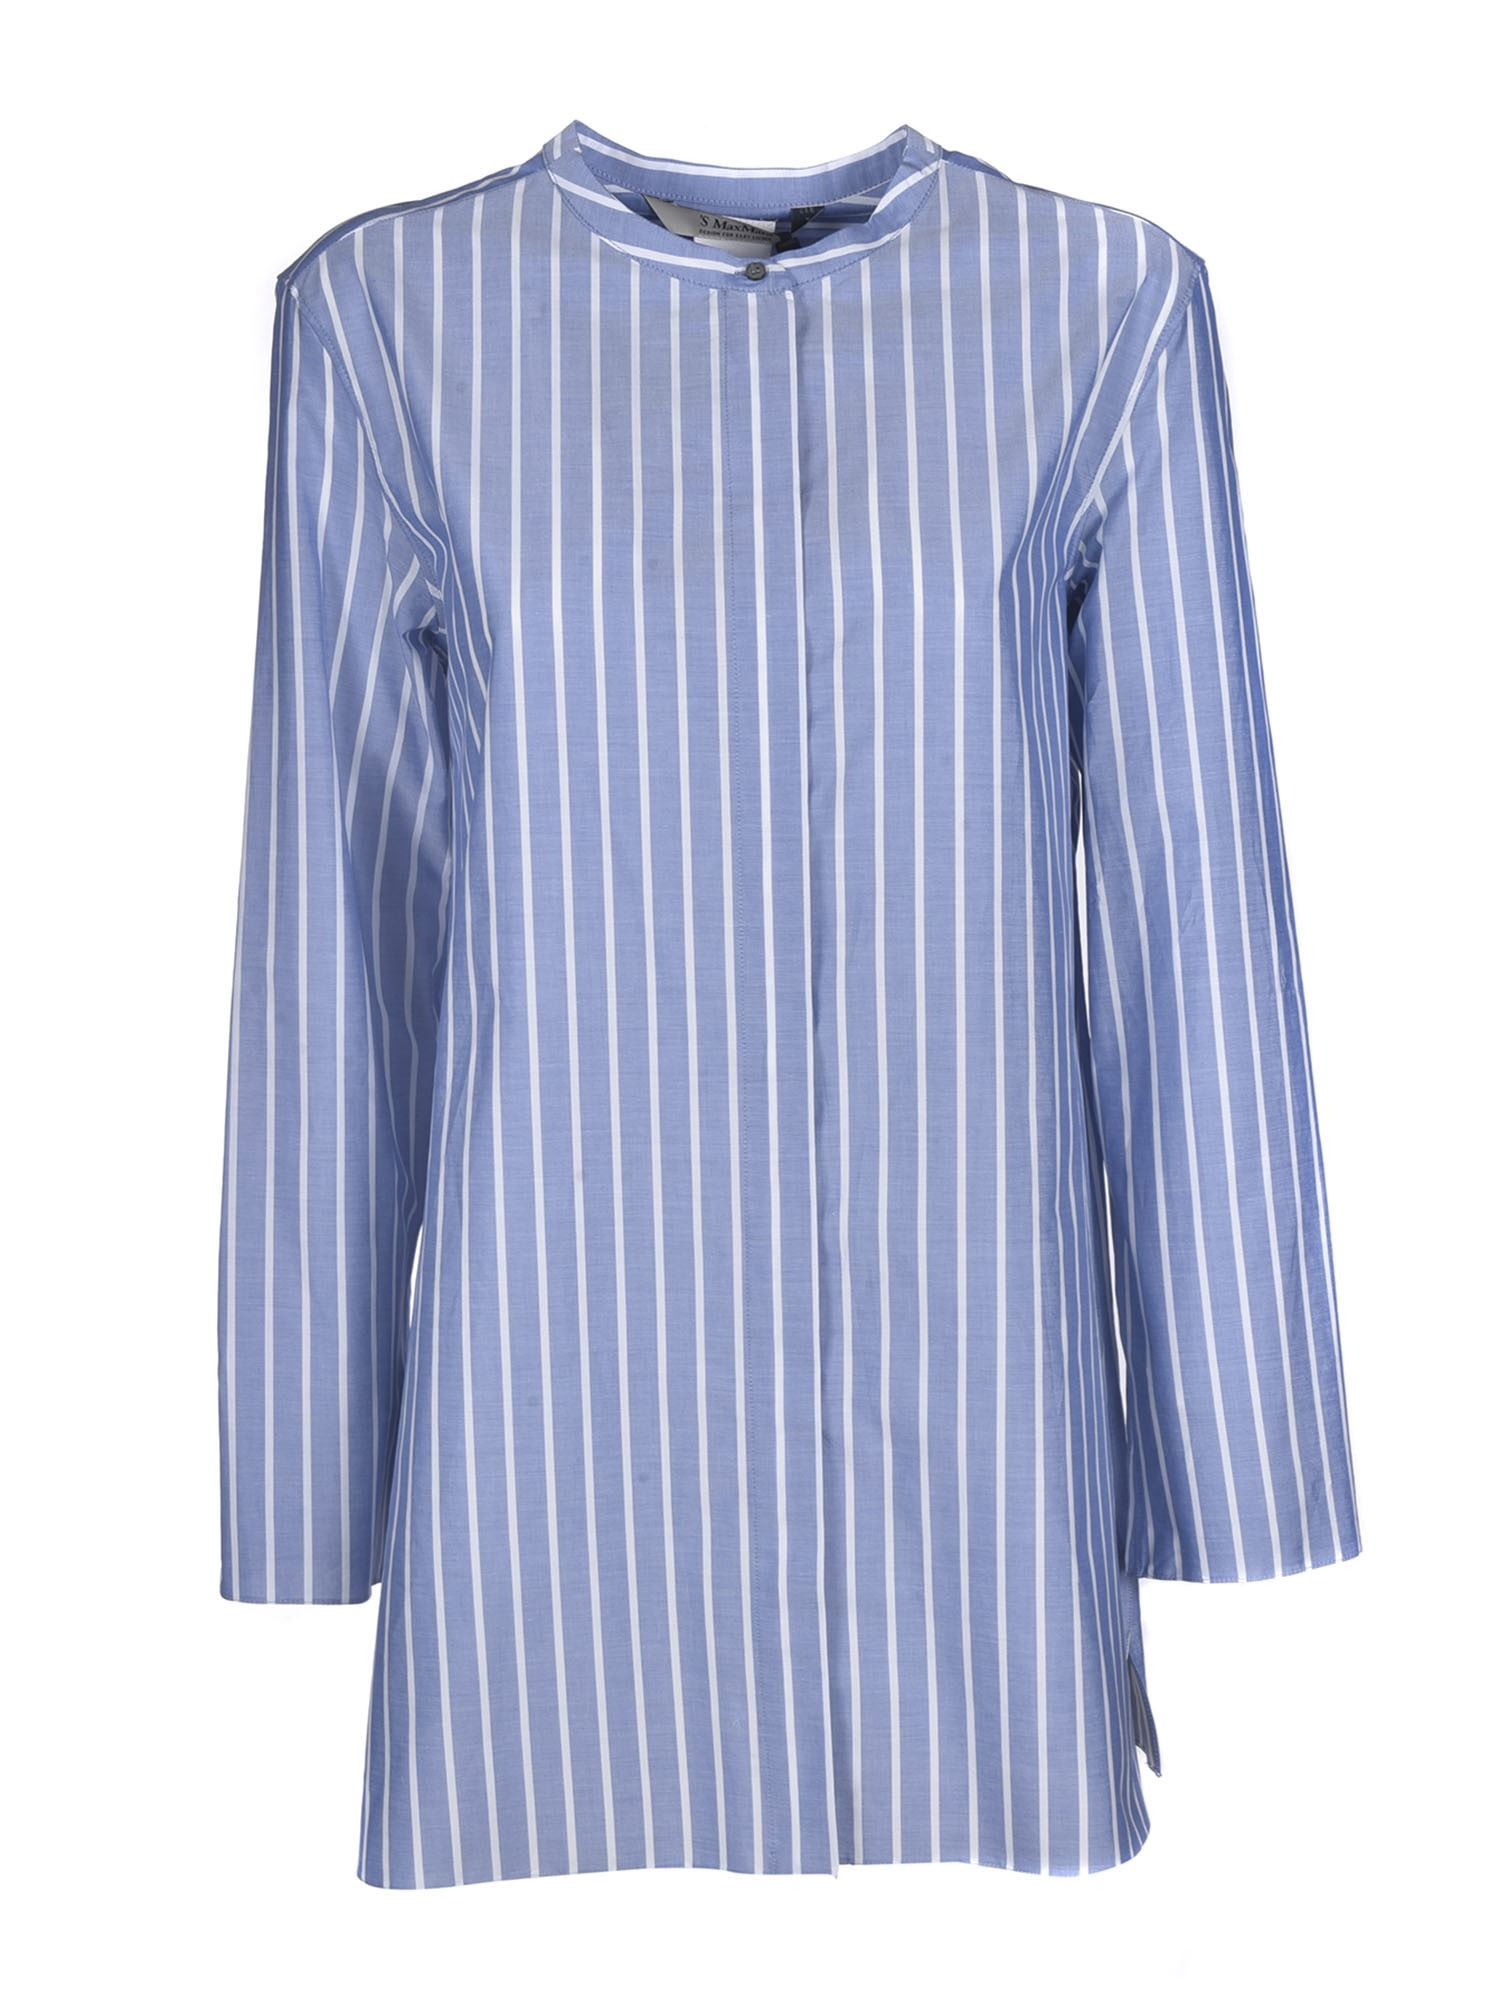 Max Mara ADDI BLOUSE IN LIGHT BLUE